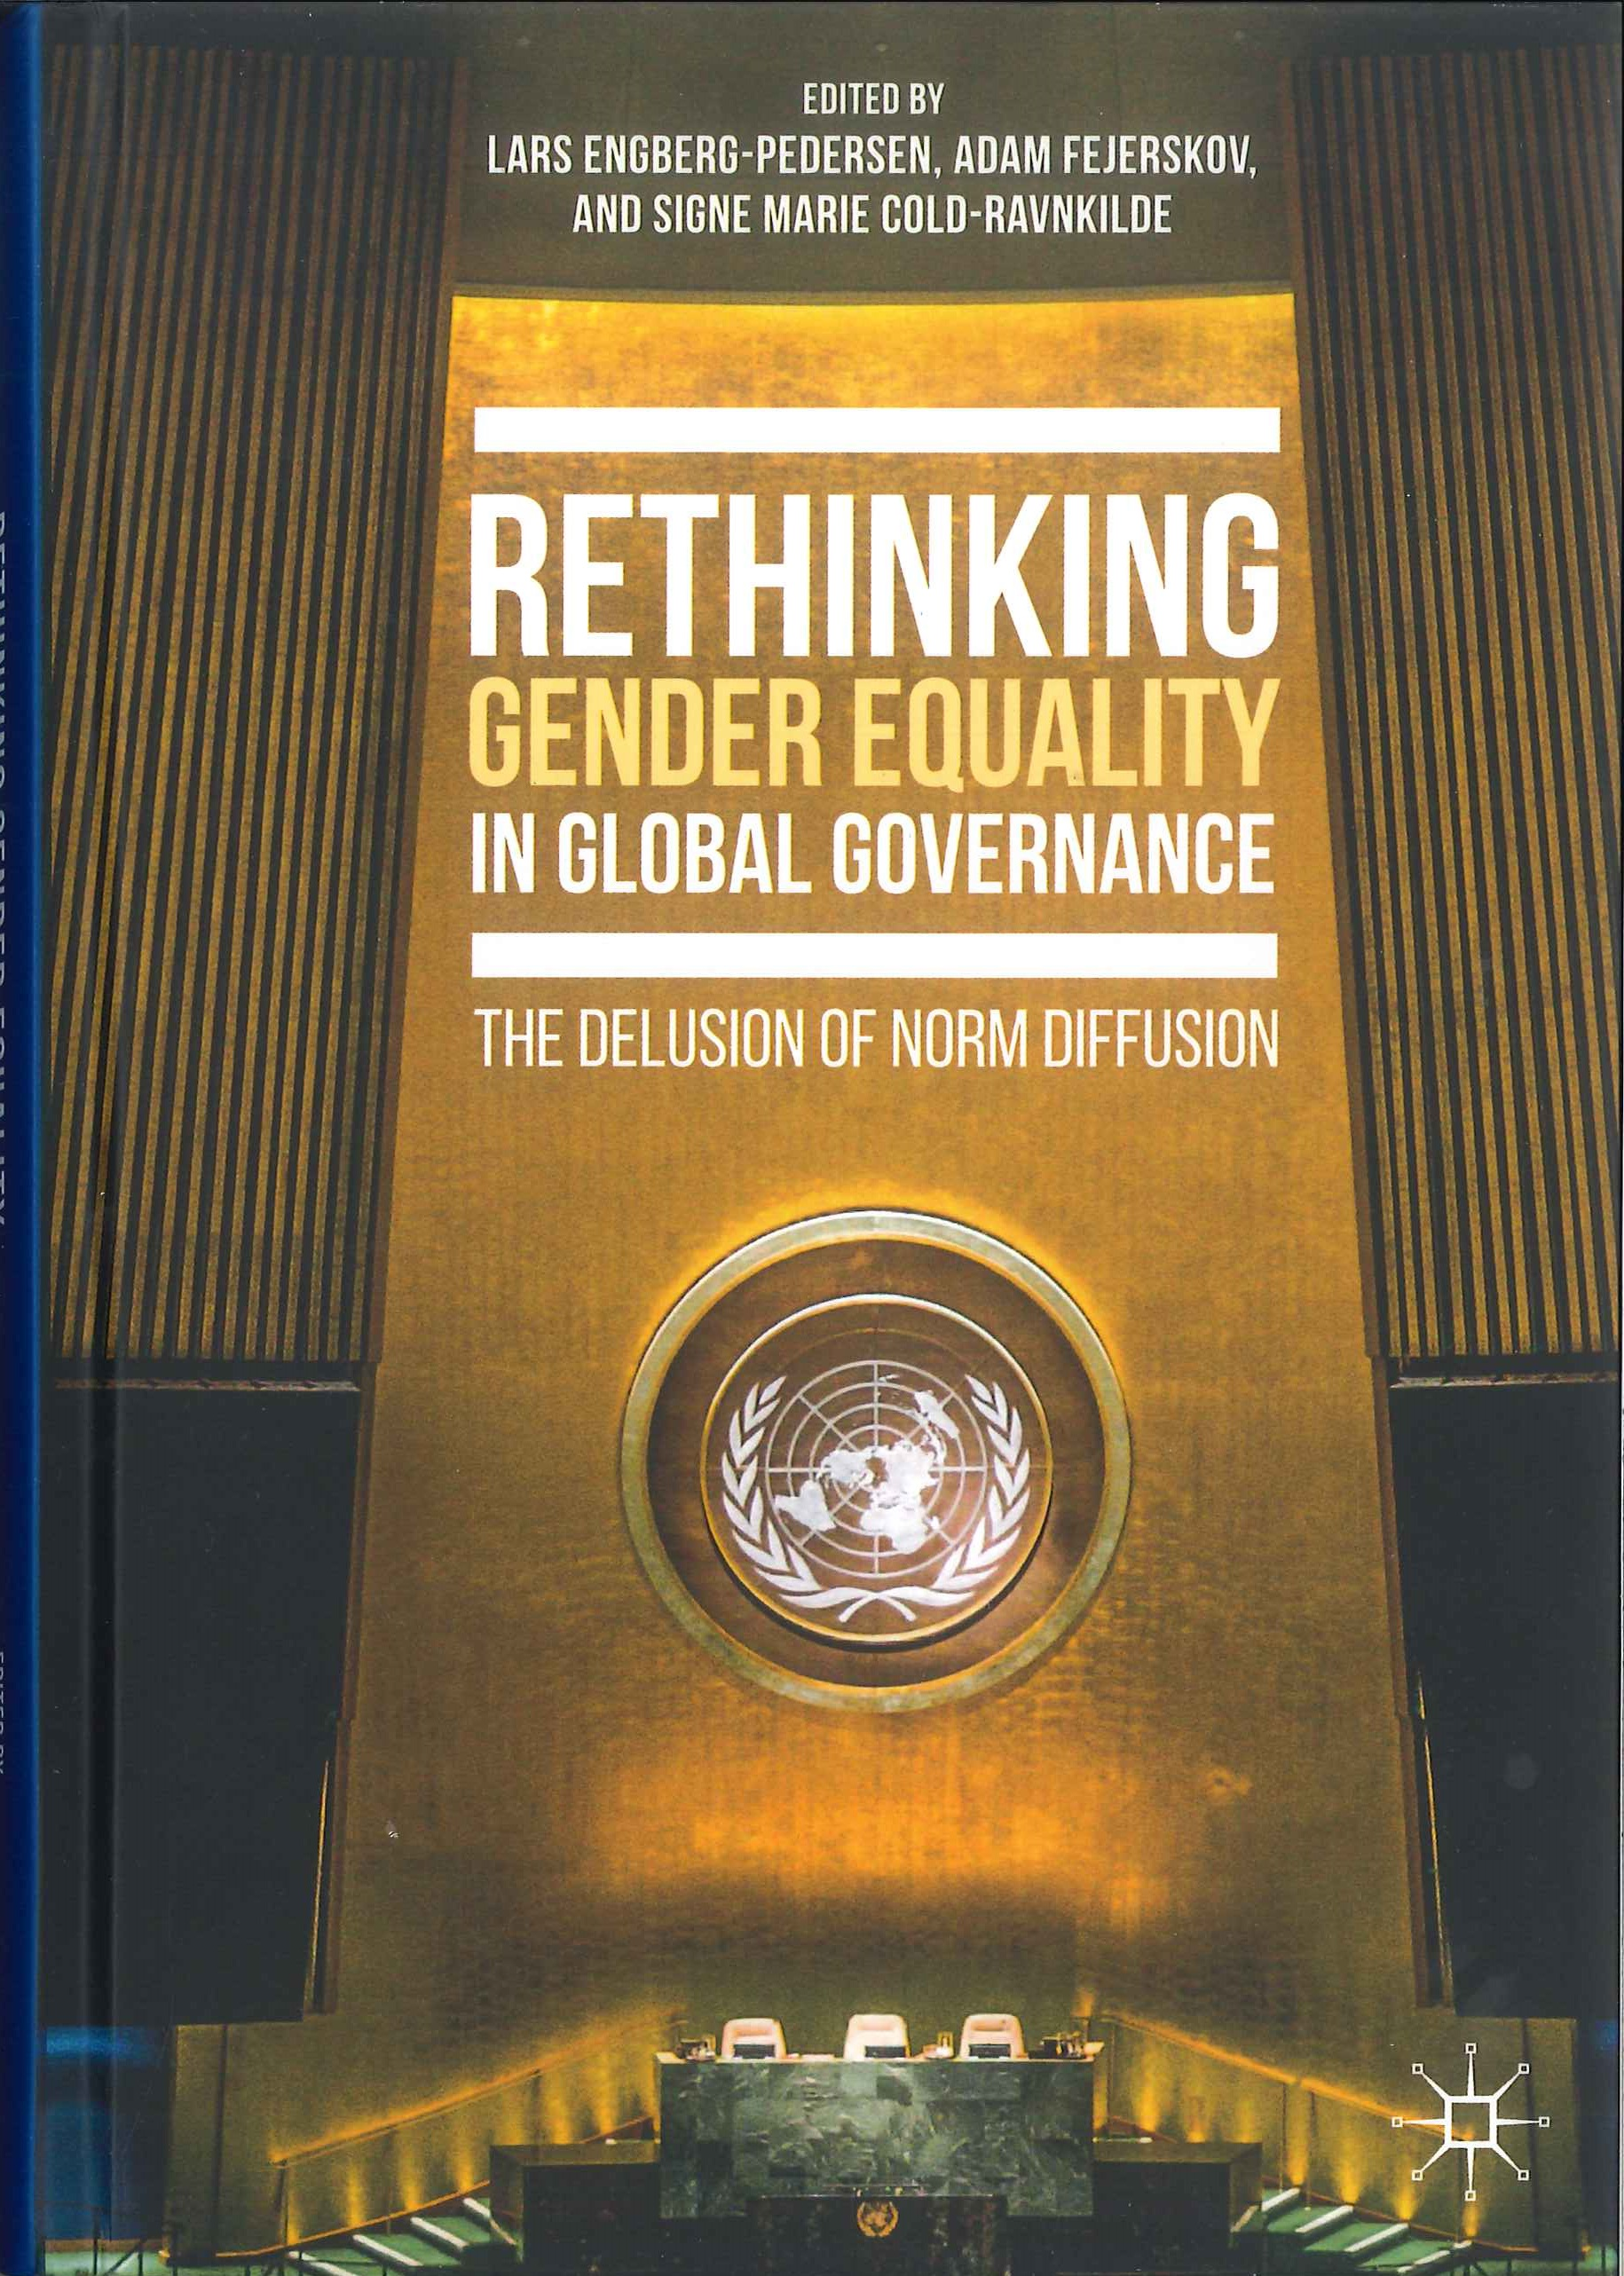 Rethinking gender equality in global governance:the delusion of norm diffusion